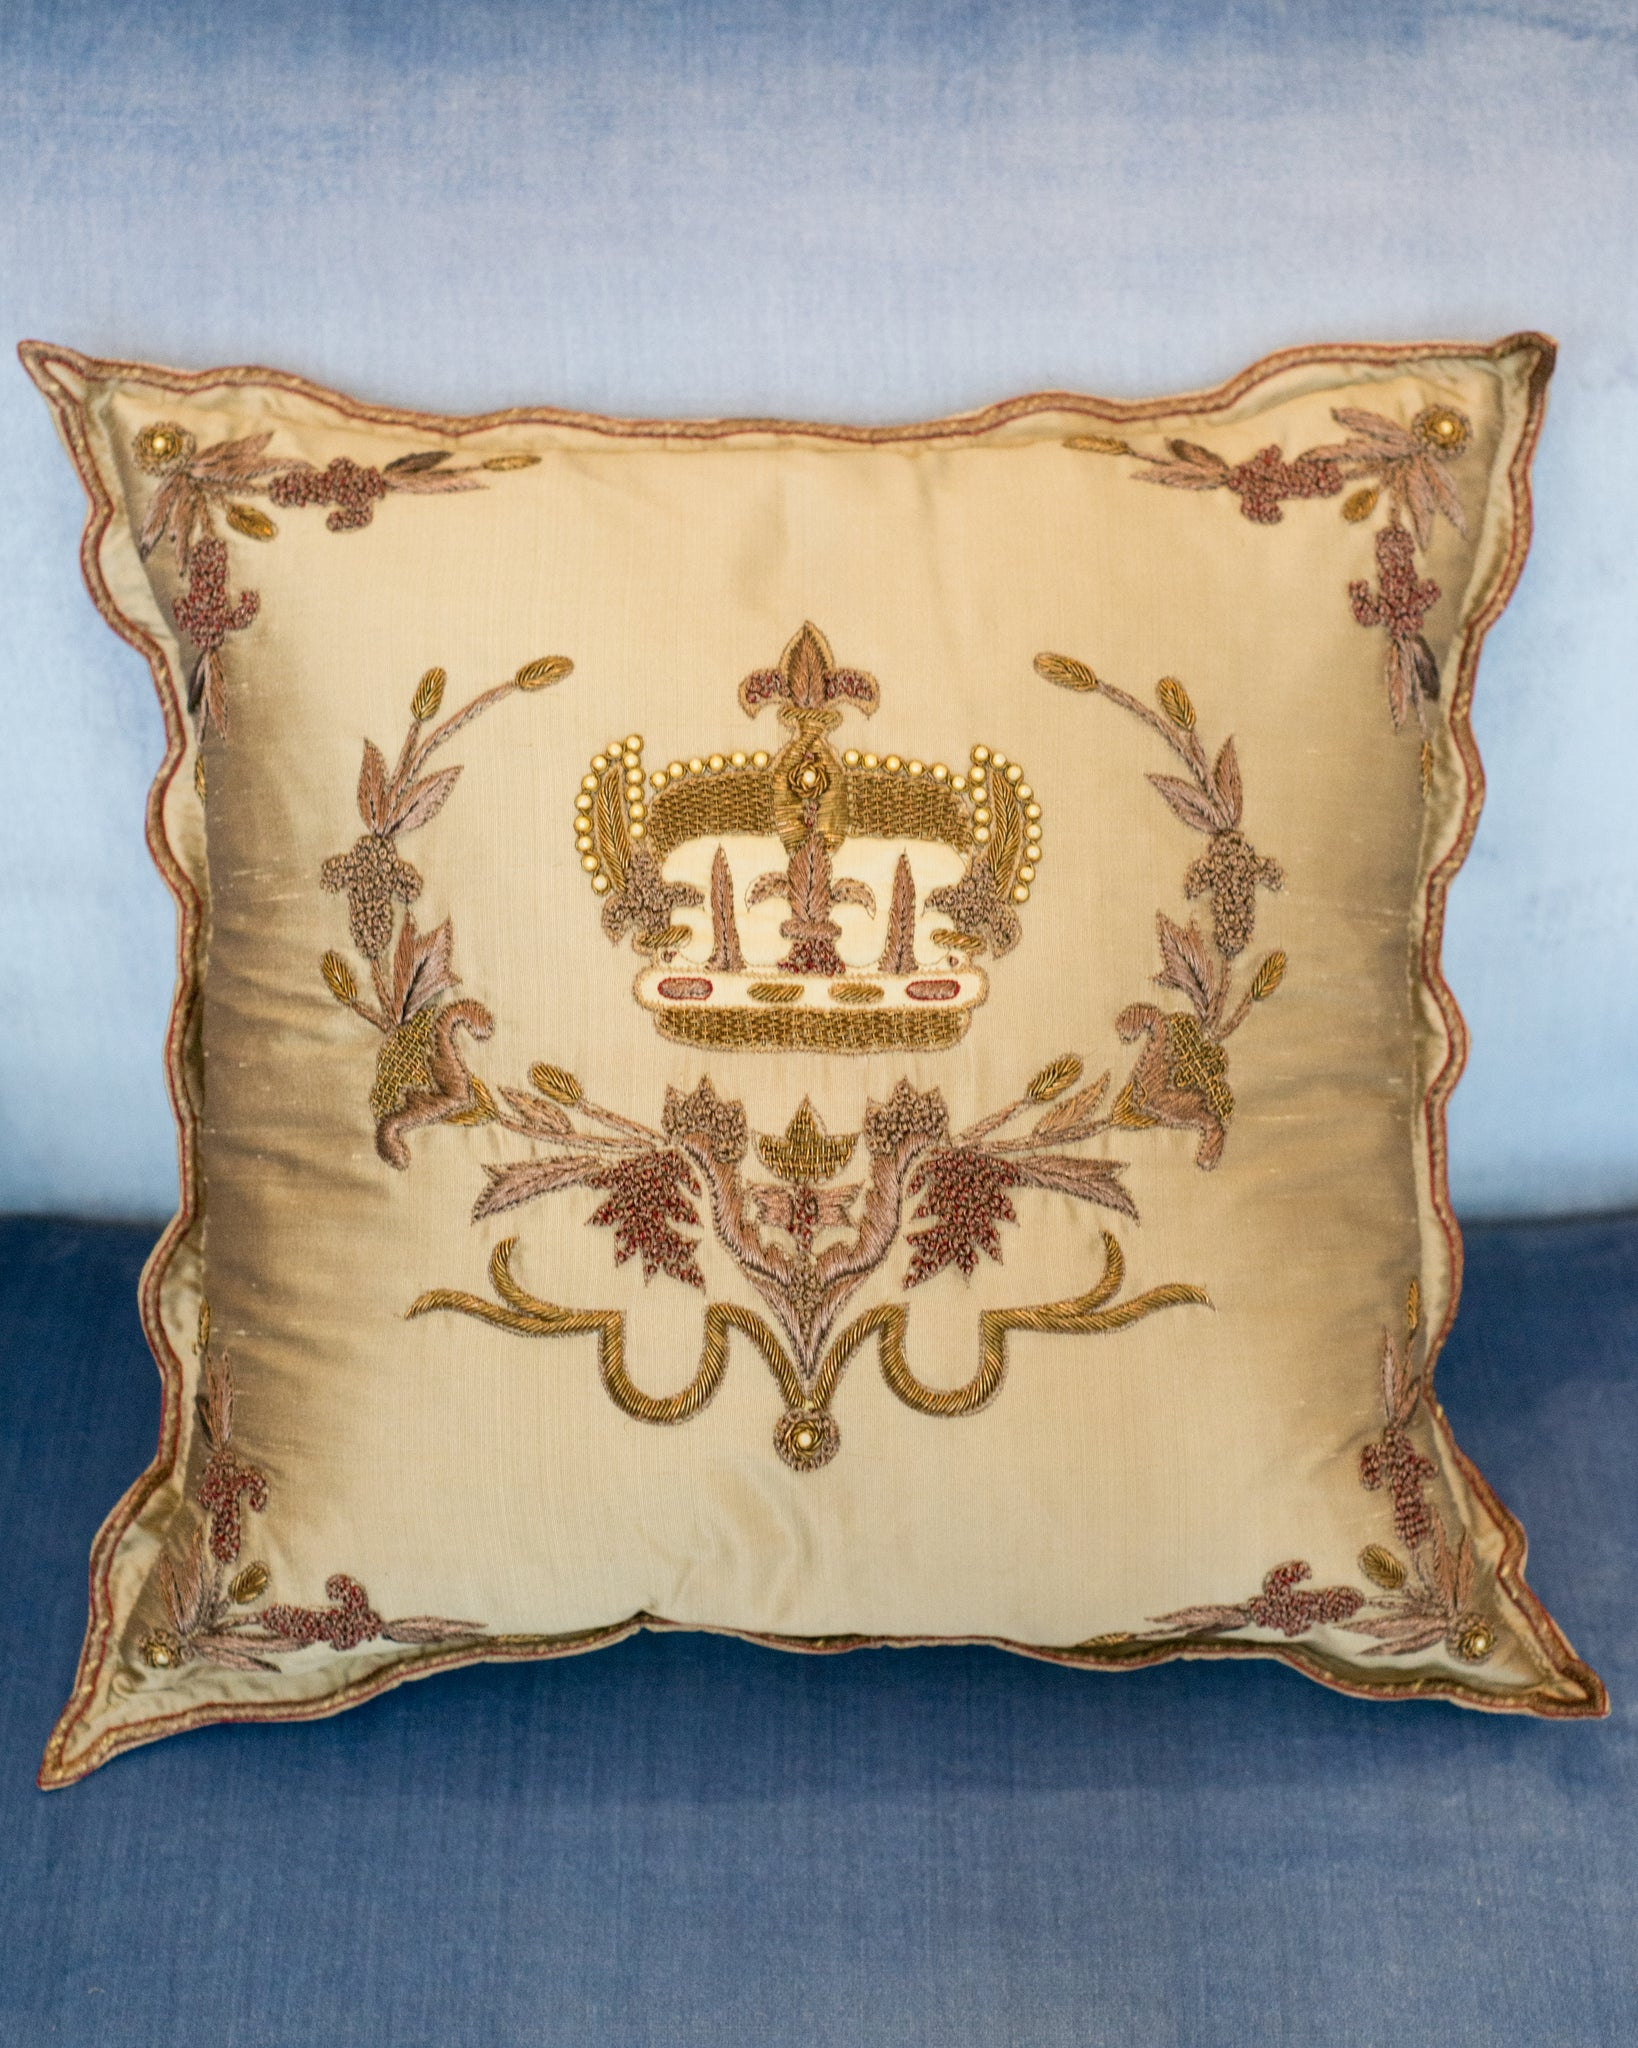 GOLD SILK PILLOW WITH EMBROIDERED & BEADED CROWN